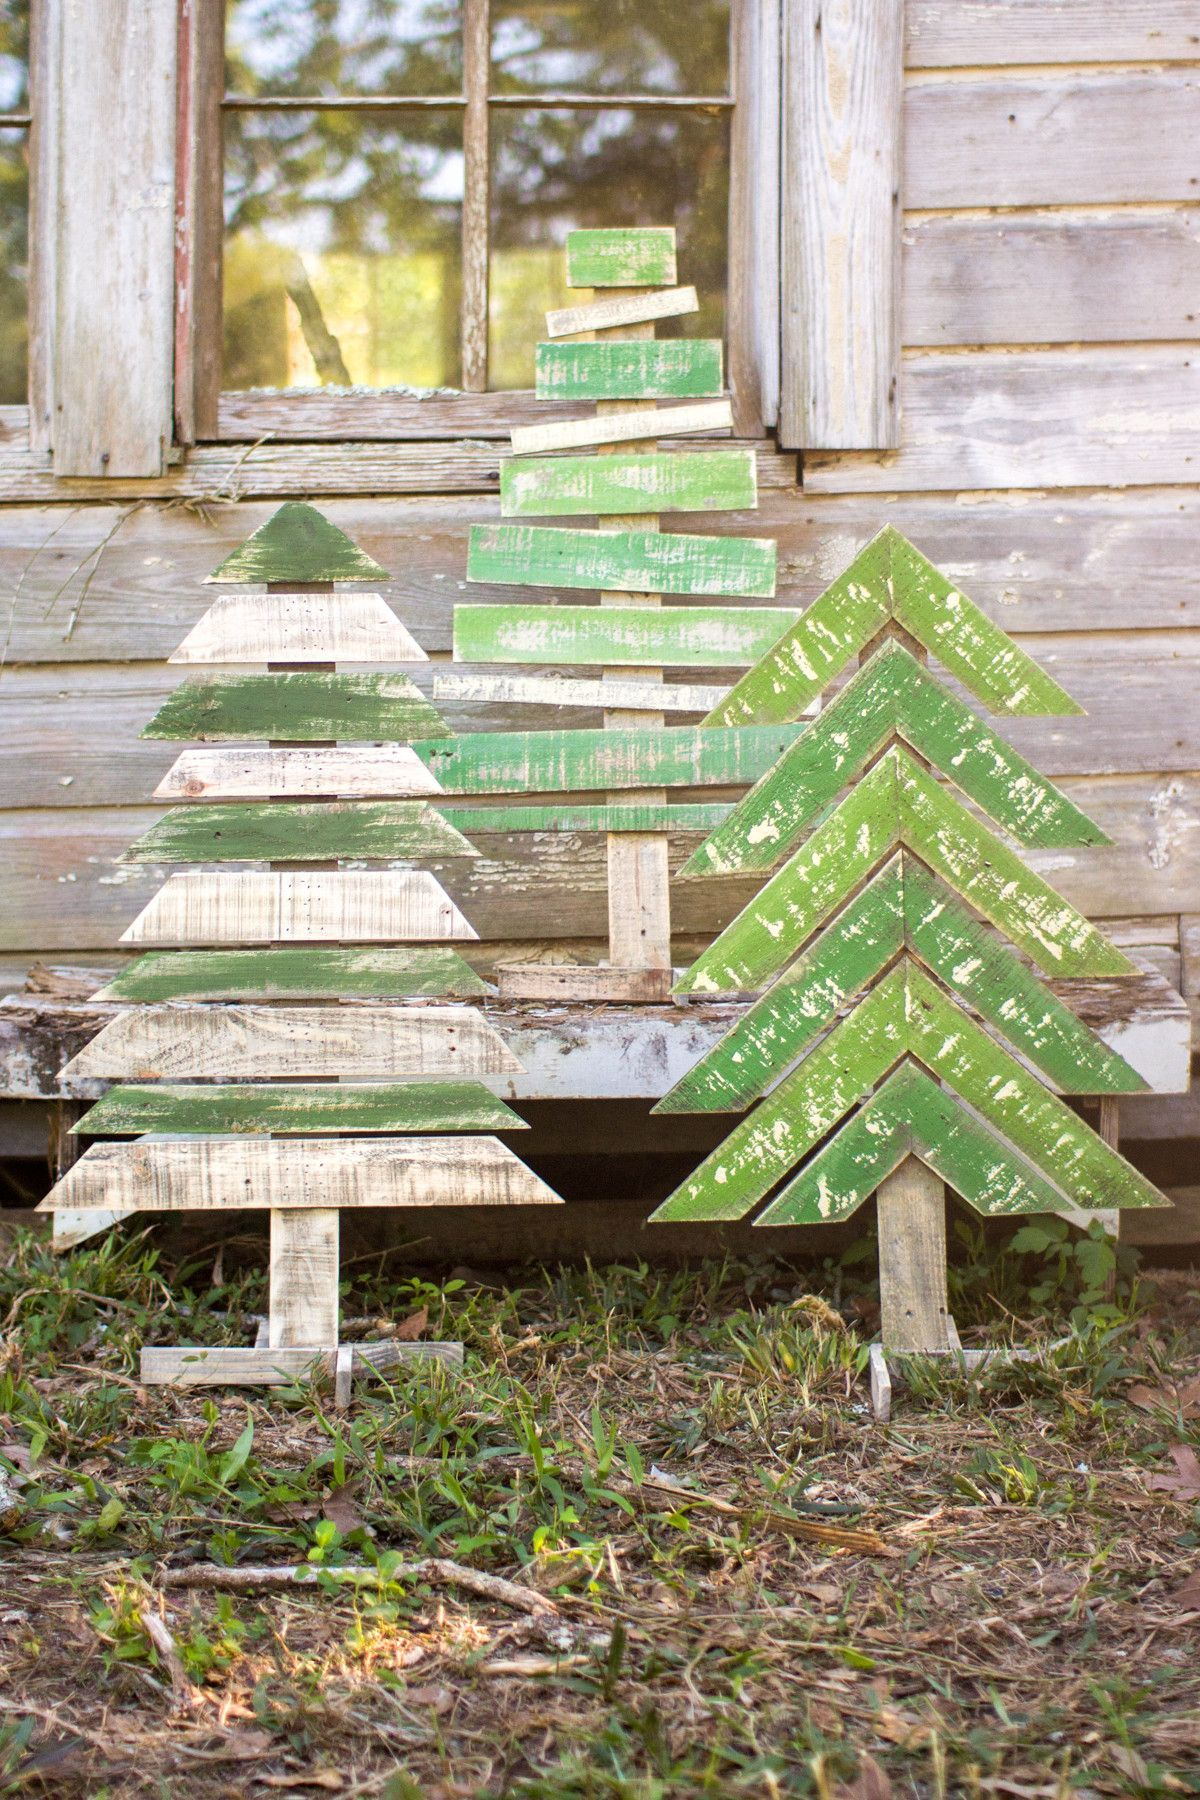 This must be the ultimate christmas yard decoration - The Recycled Wooden Christmas Trees With Stands Are The Decorative Full Of